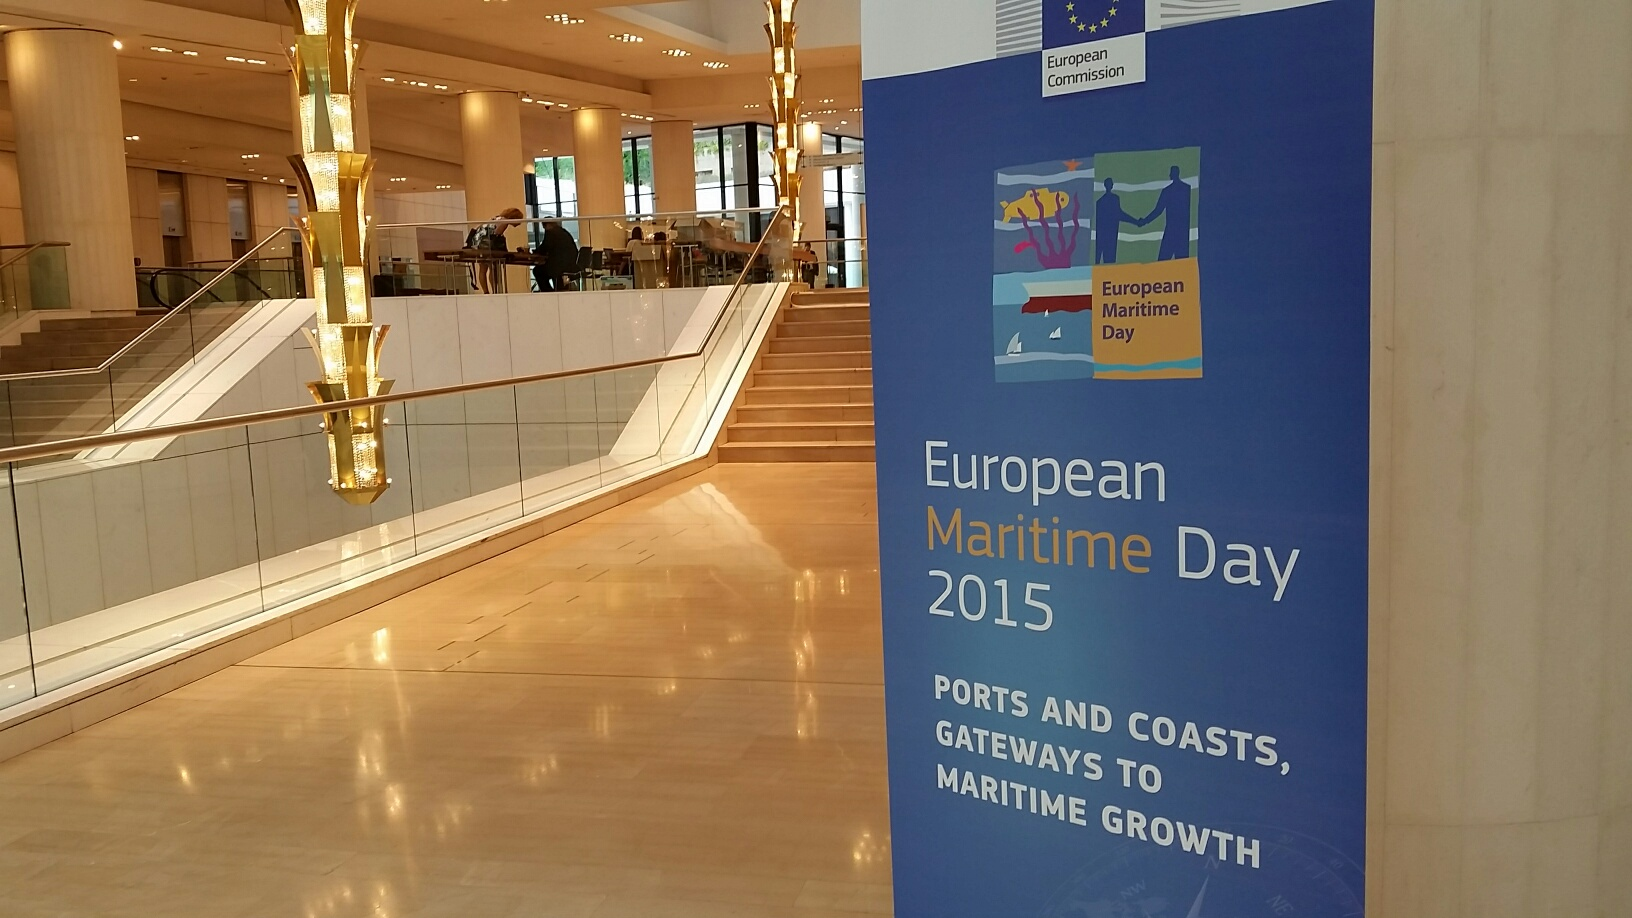 European Maritime Day 2015 in Piraeus